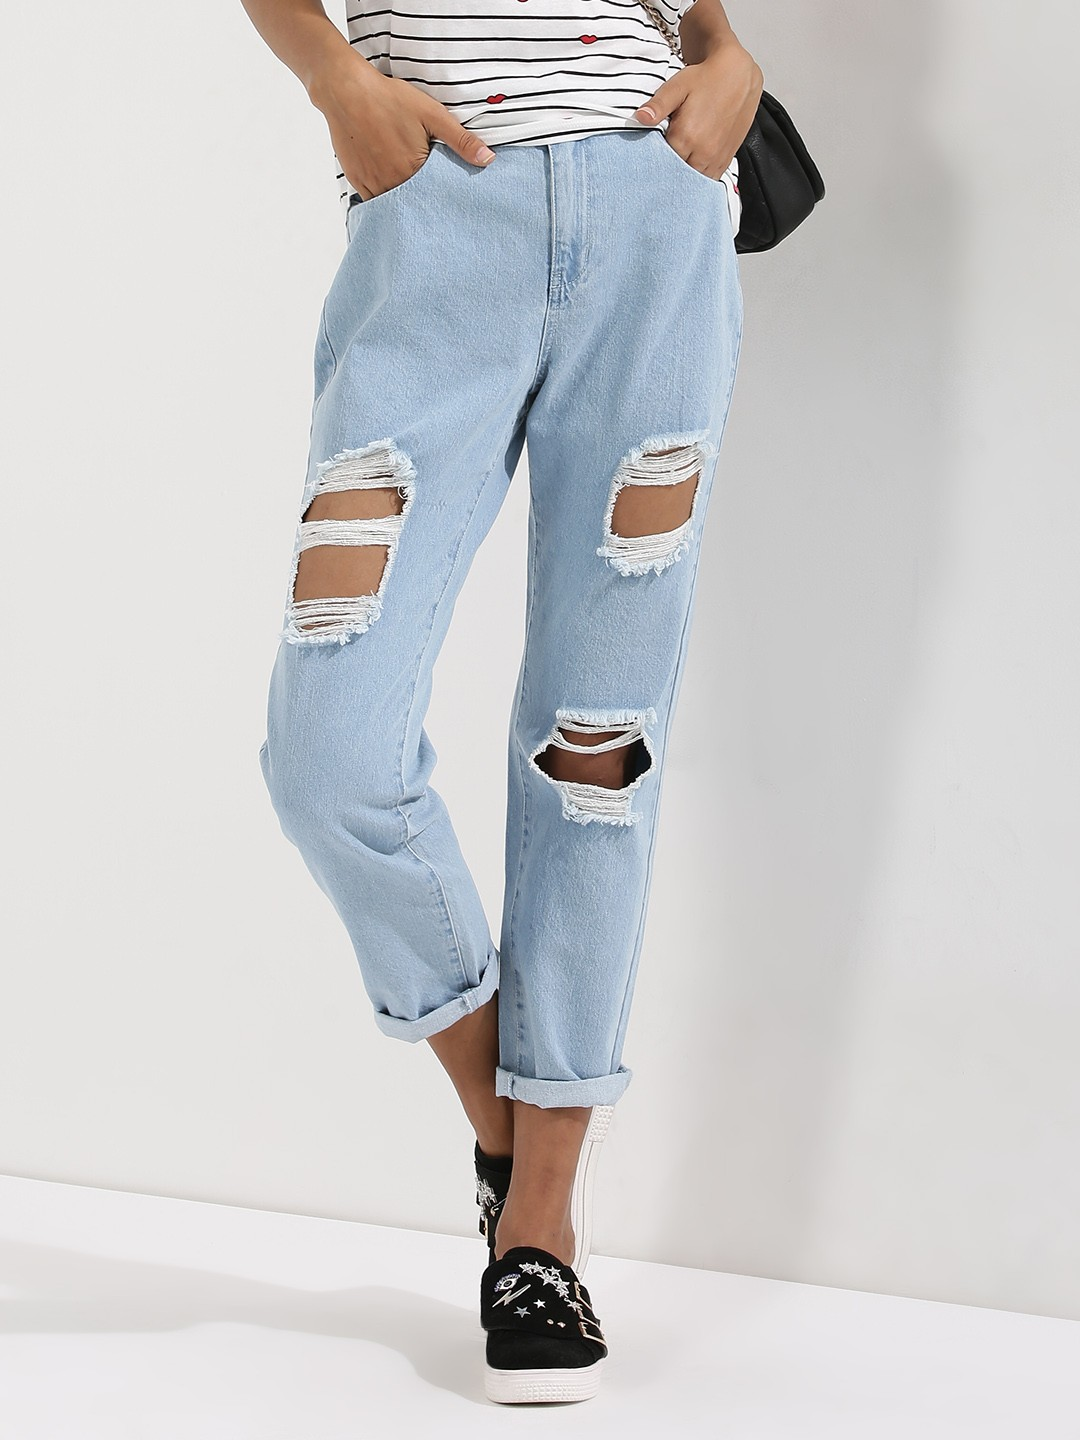 Buy VERO MODA Busted Boyfriend Jeans For Women - Women's Blue ...